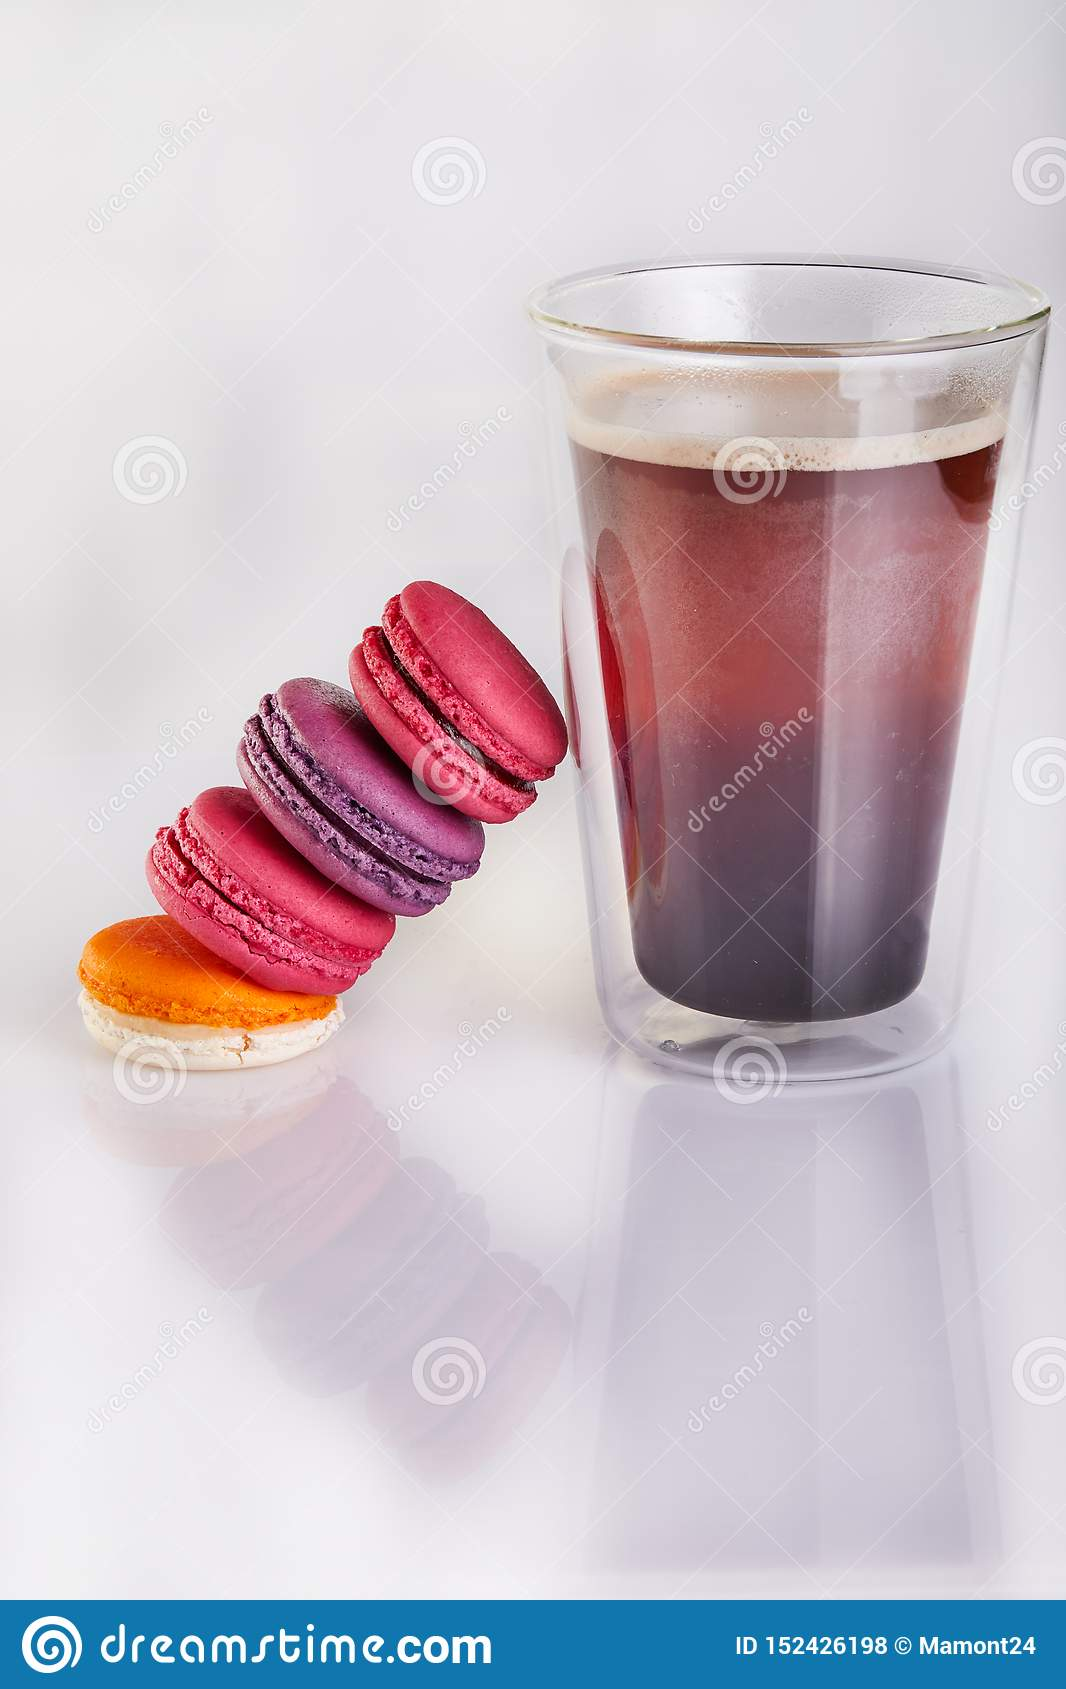 Fresh macarons of different colors and flavors and a glass of espresso coffee on a white background